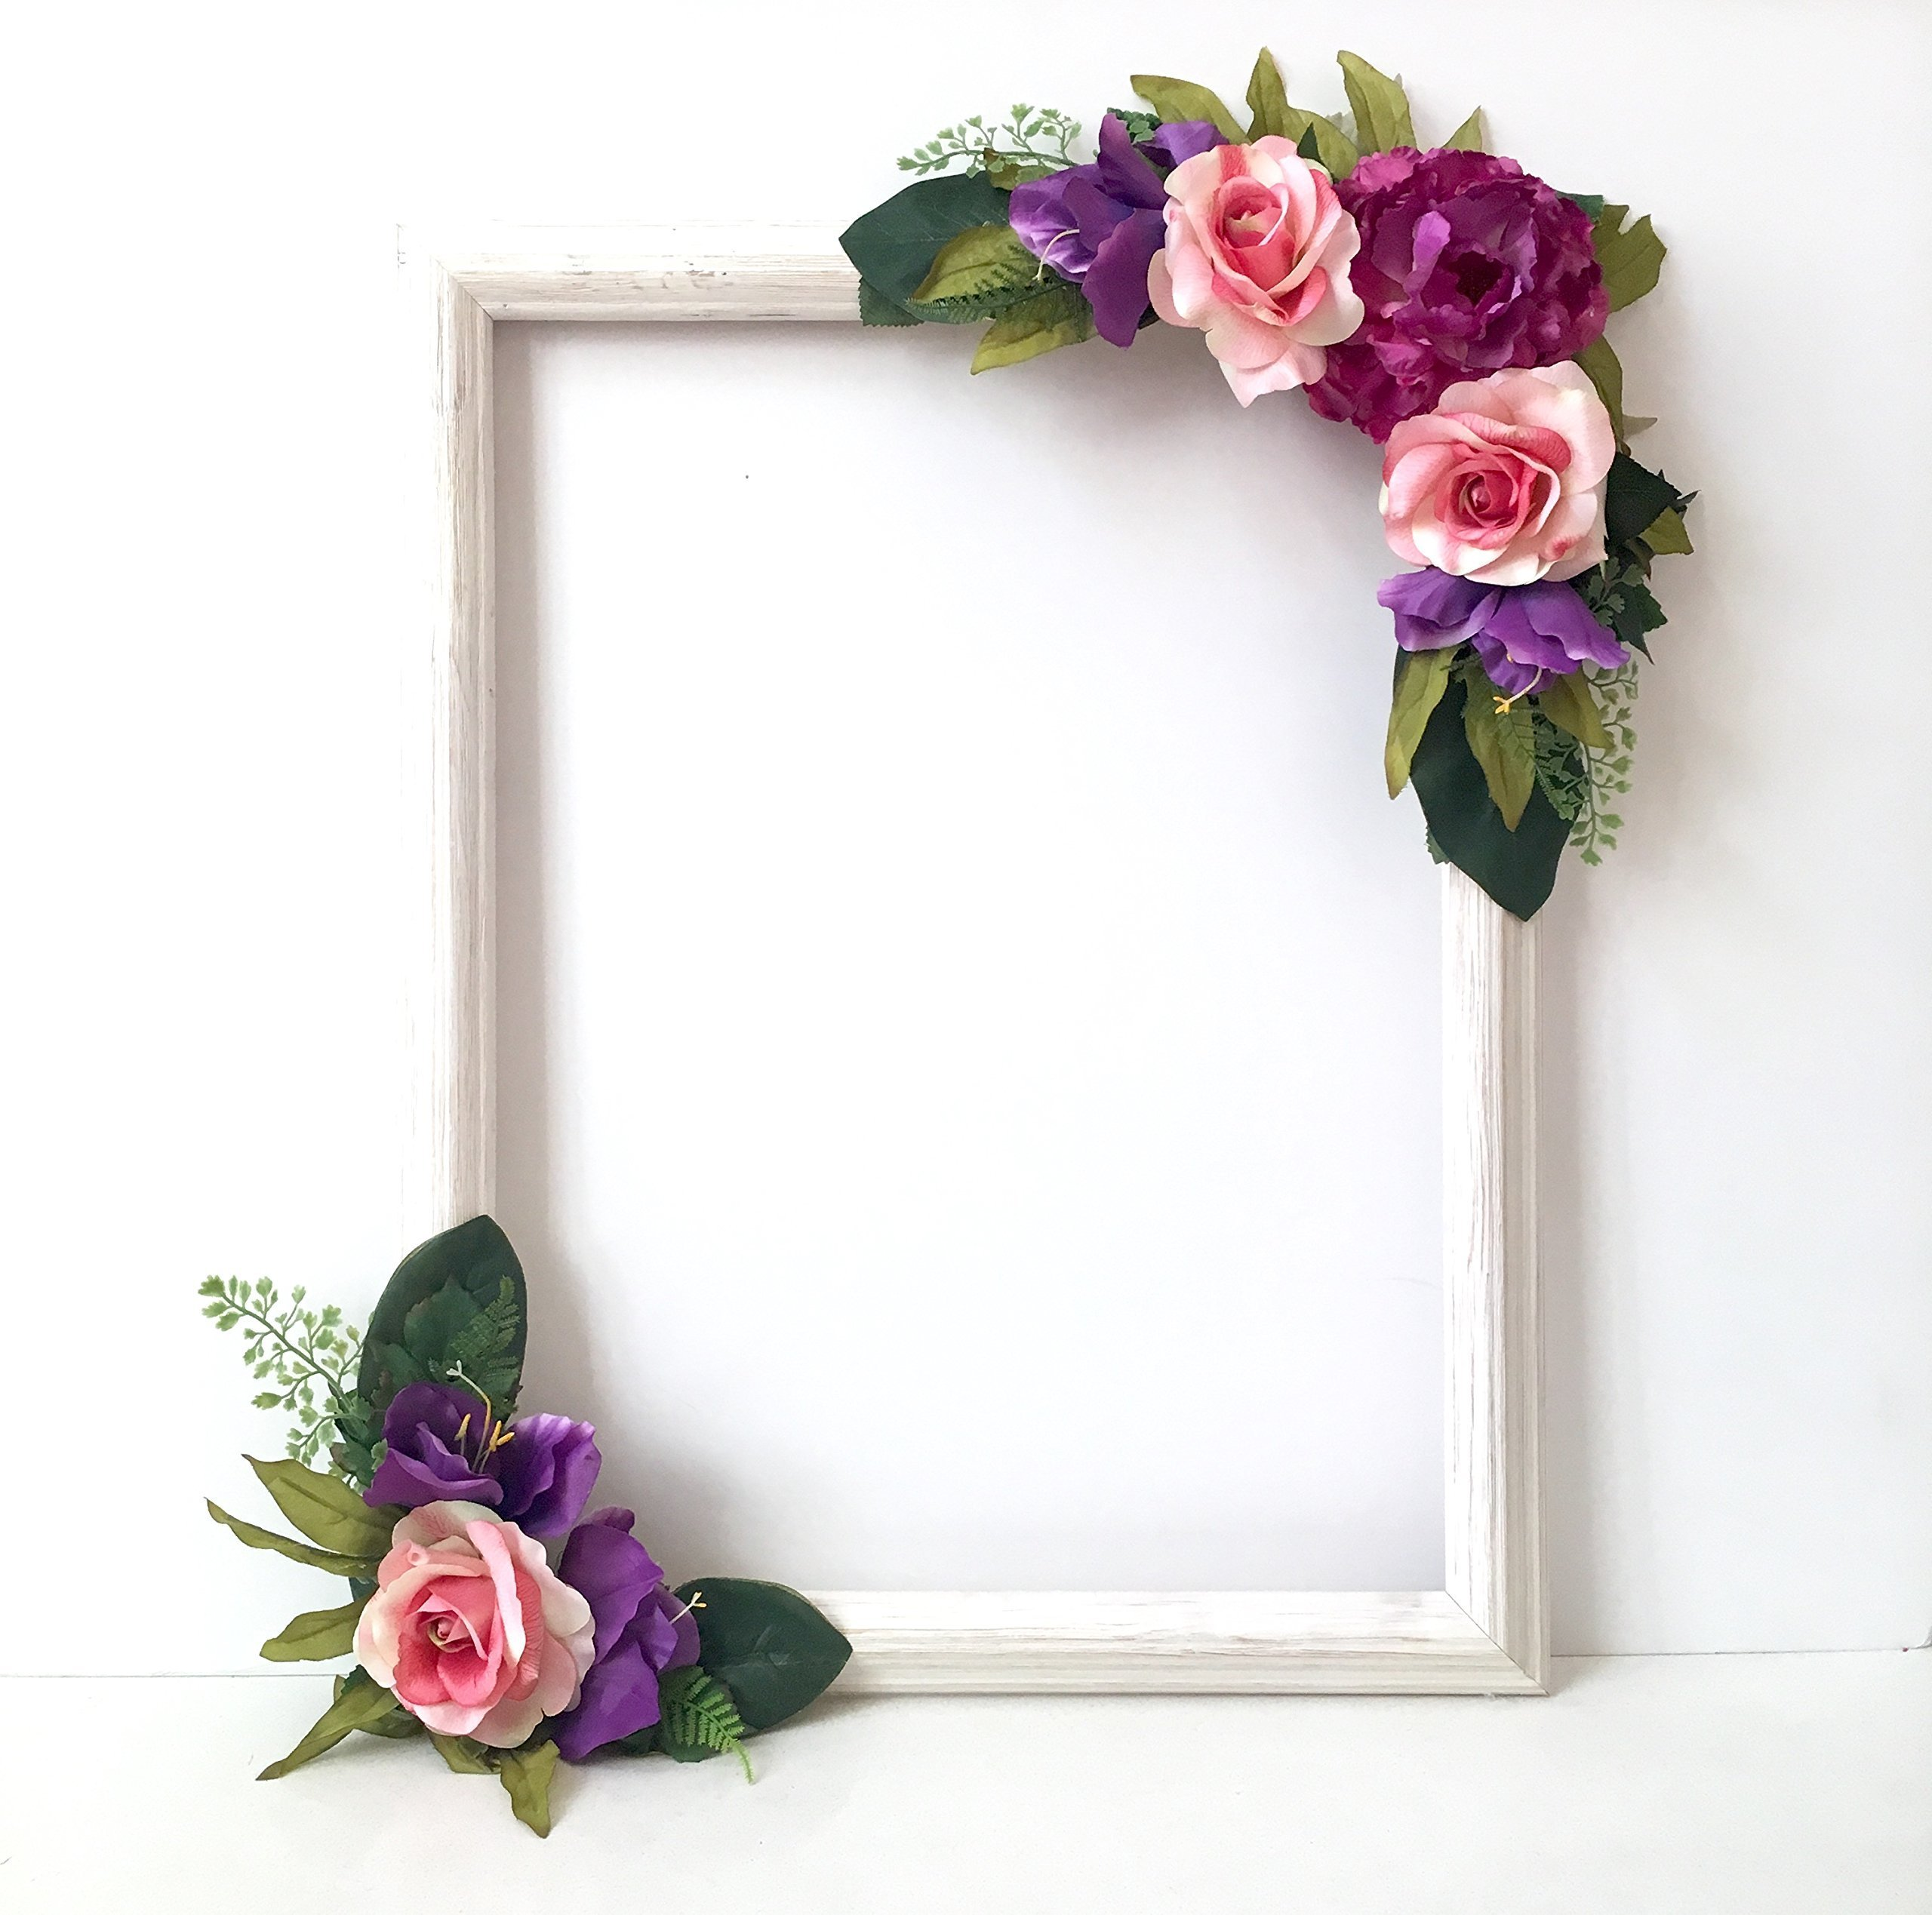 Floral Selfie Frame, Photo Prop Frame, Photo Booth Selfie Frame, 18''x24'', Variety Flower Colors